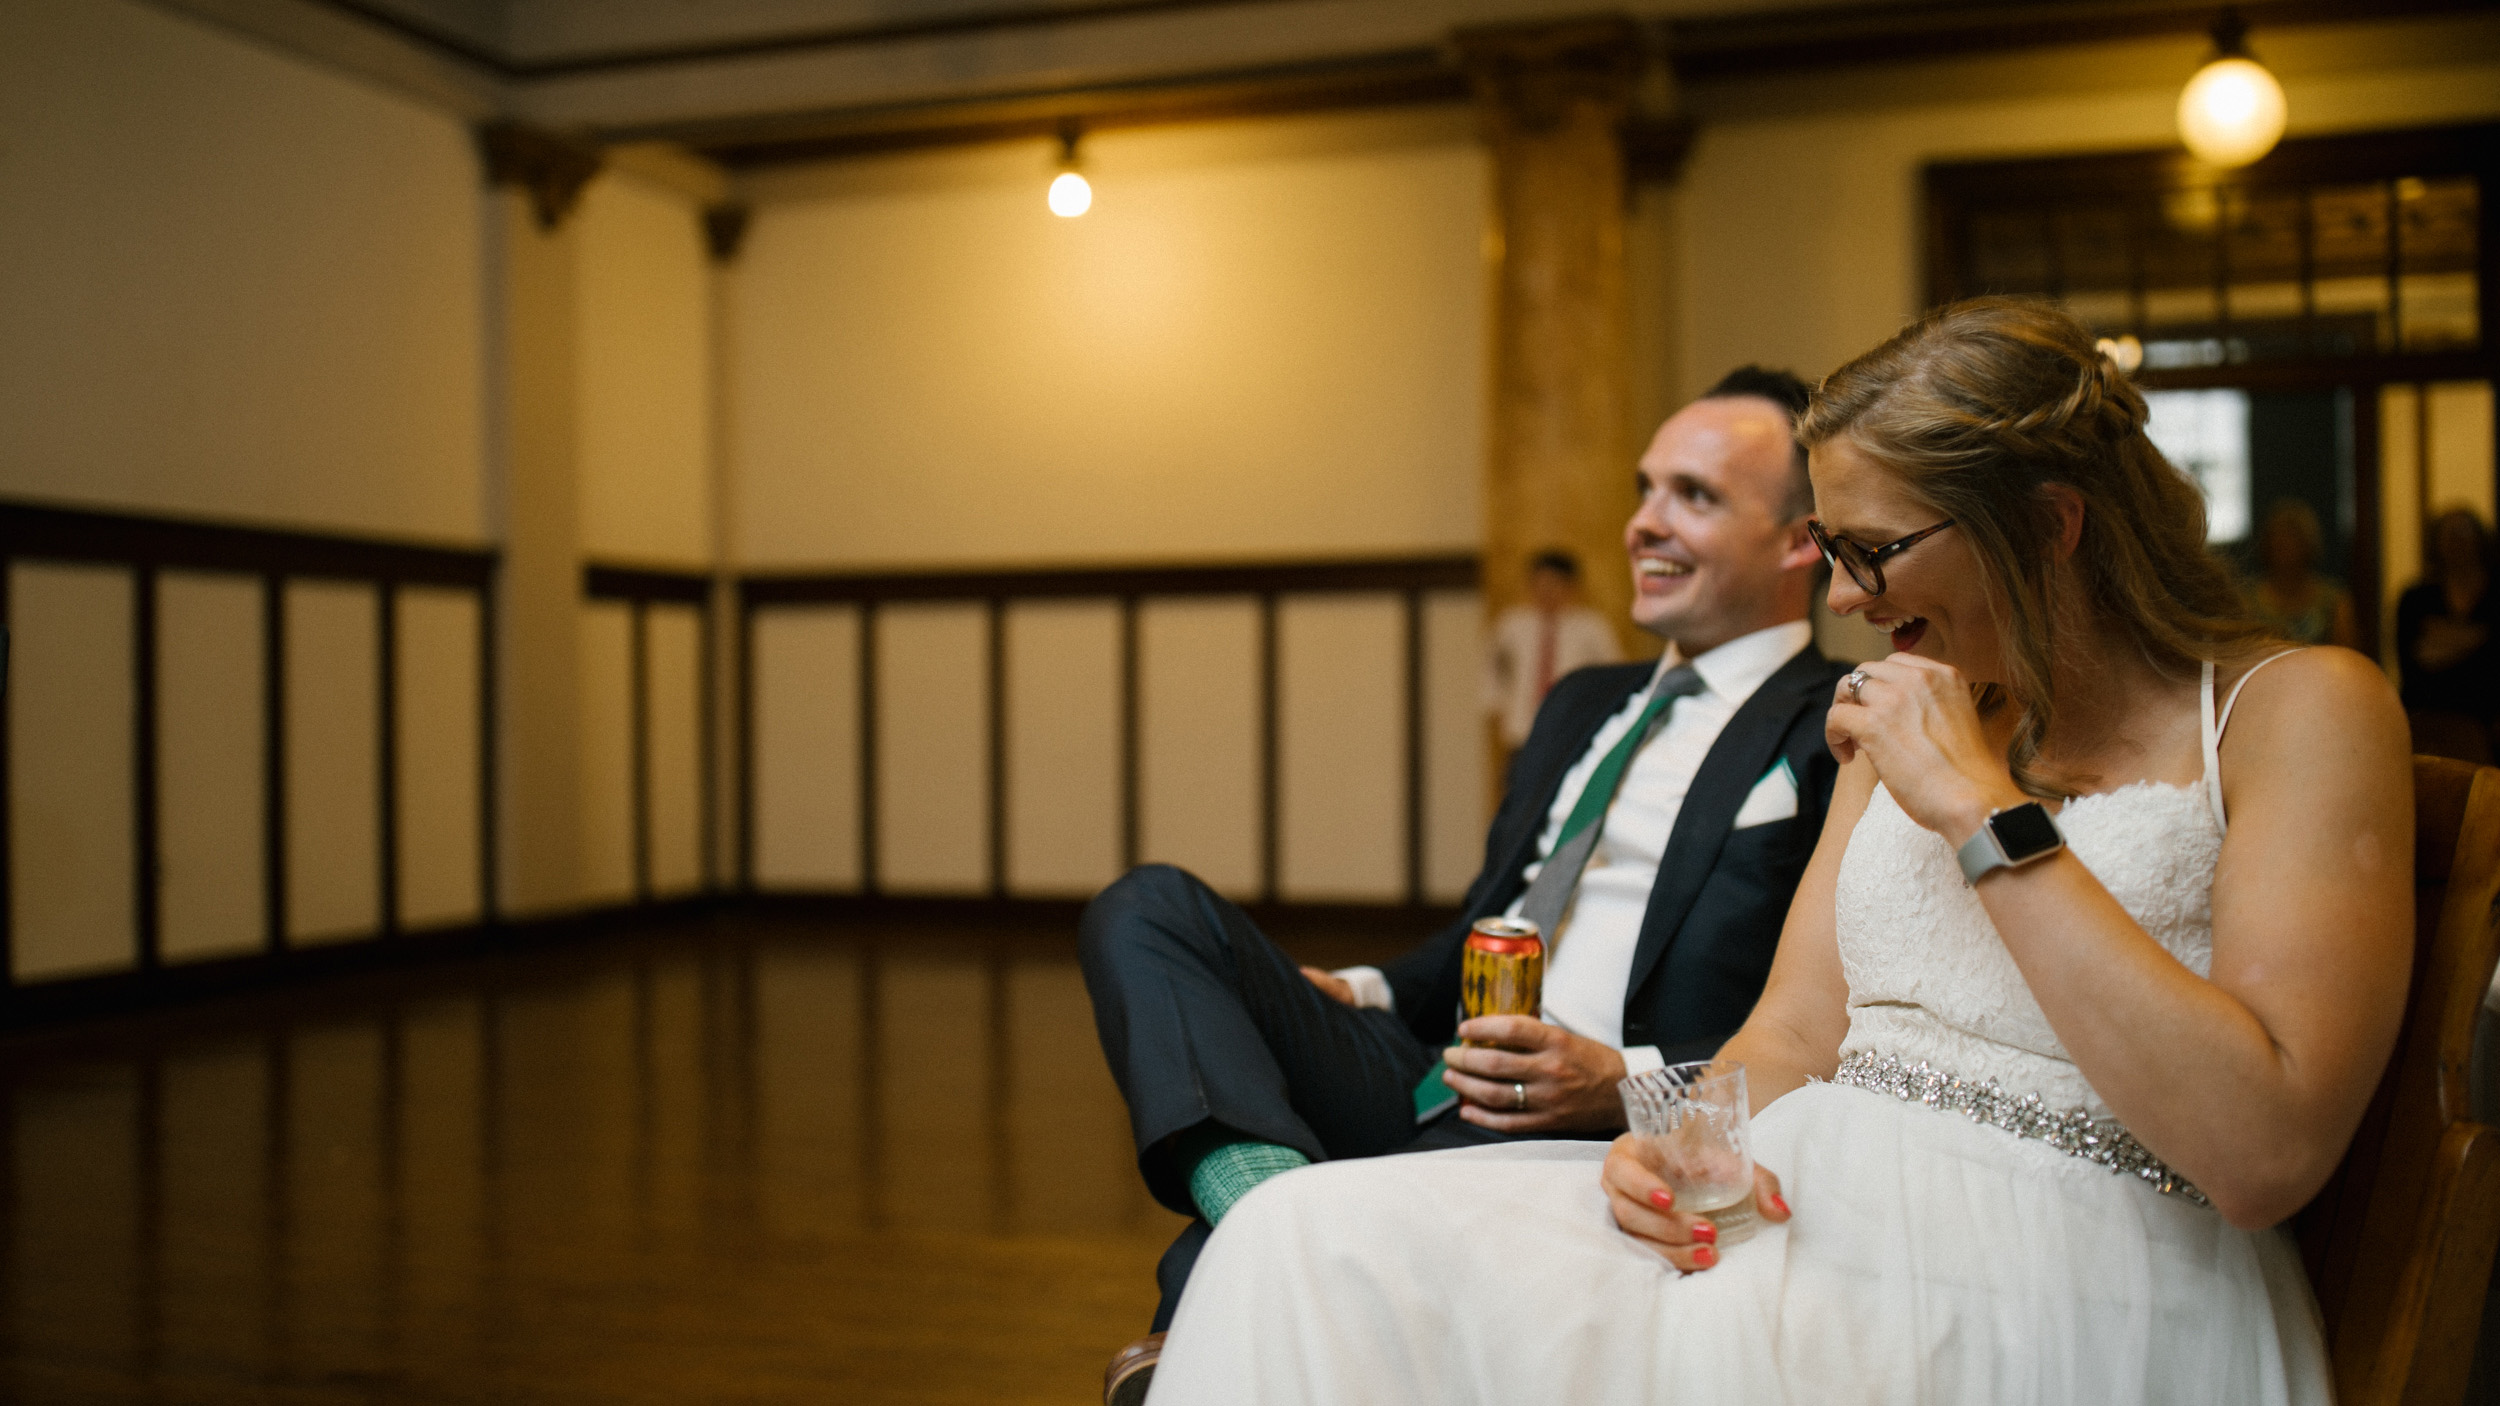 alec_vanderboom_john_micahel_lucy_kansas_city_wedding_photographer-0065.jpg